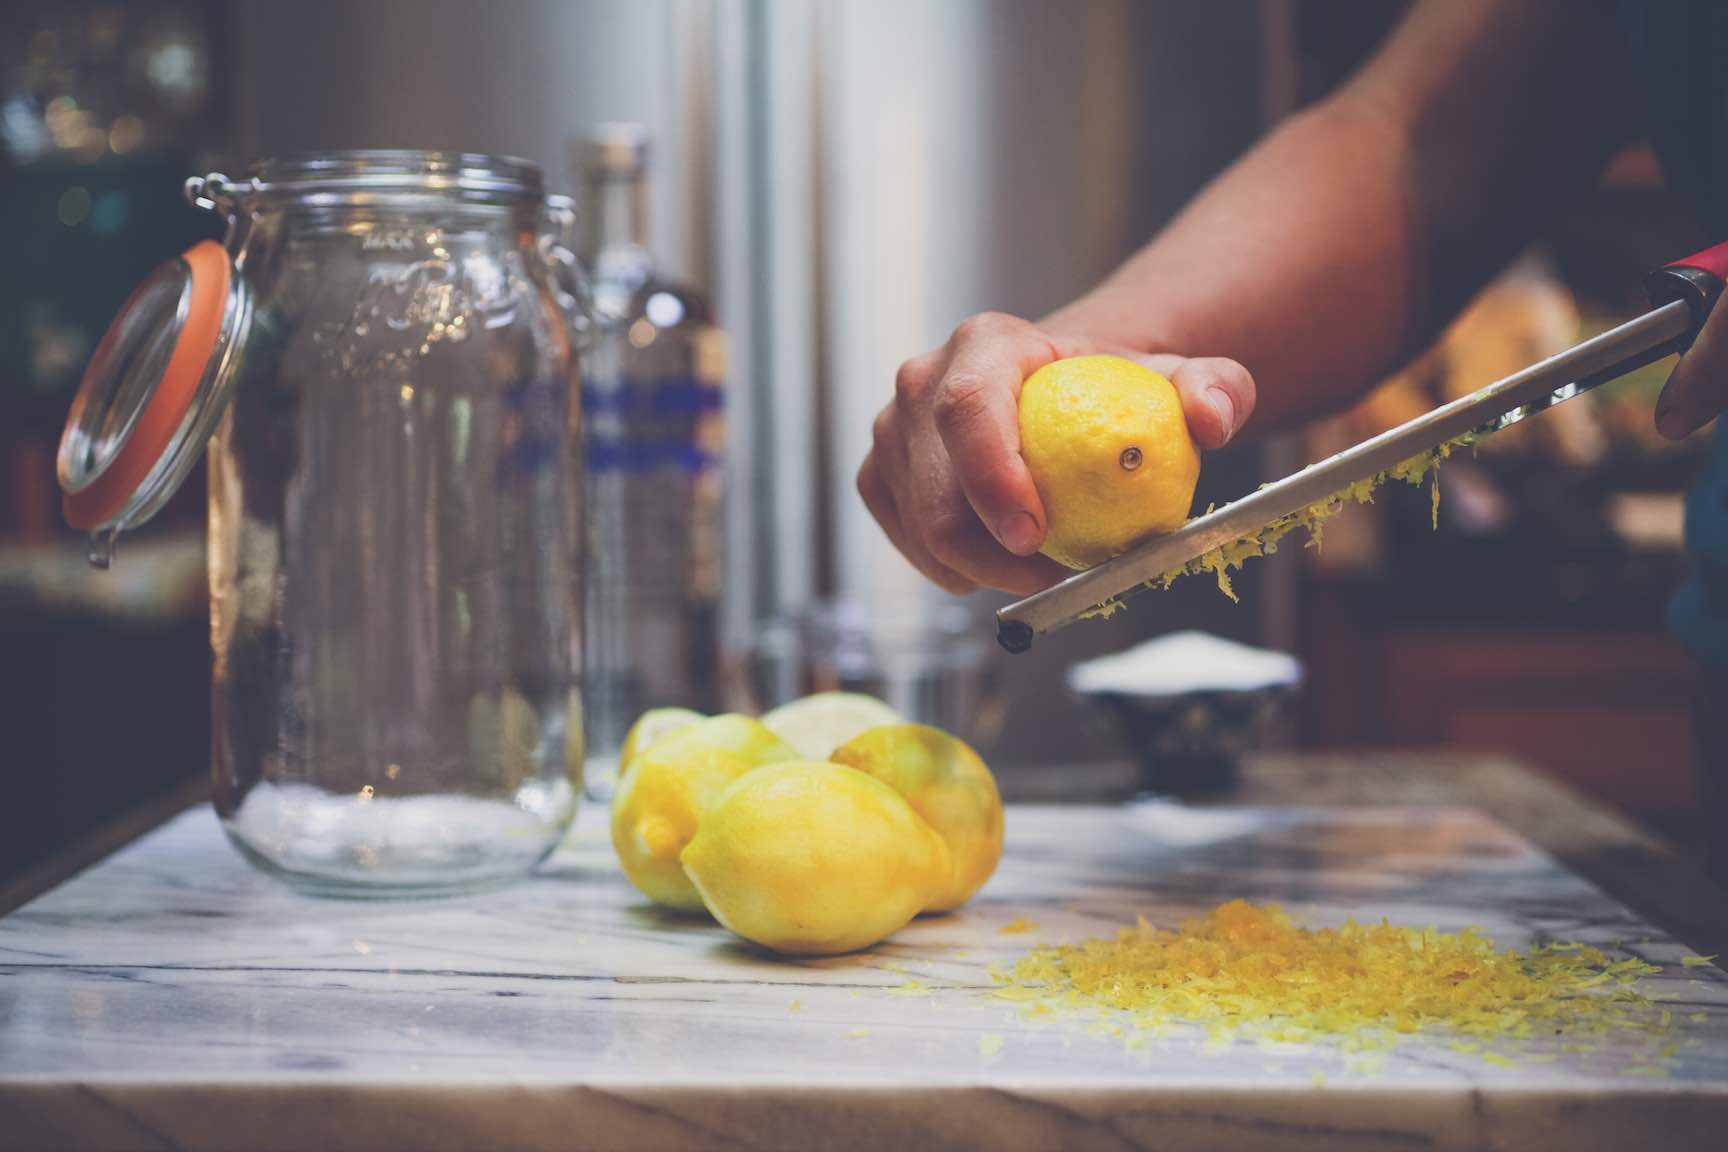 zesting lemons for homemade limoncello